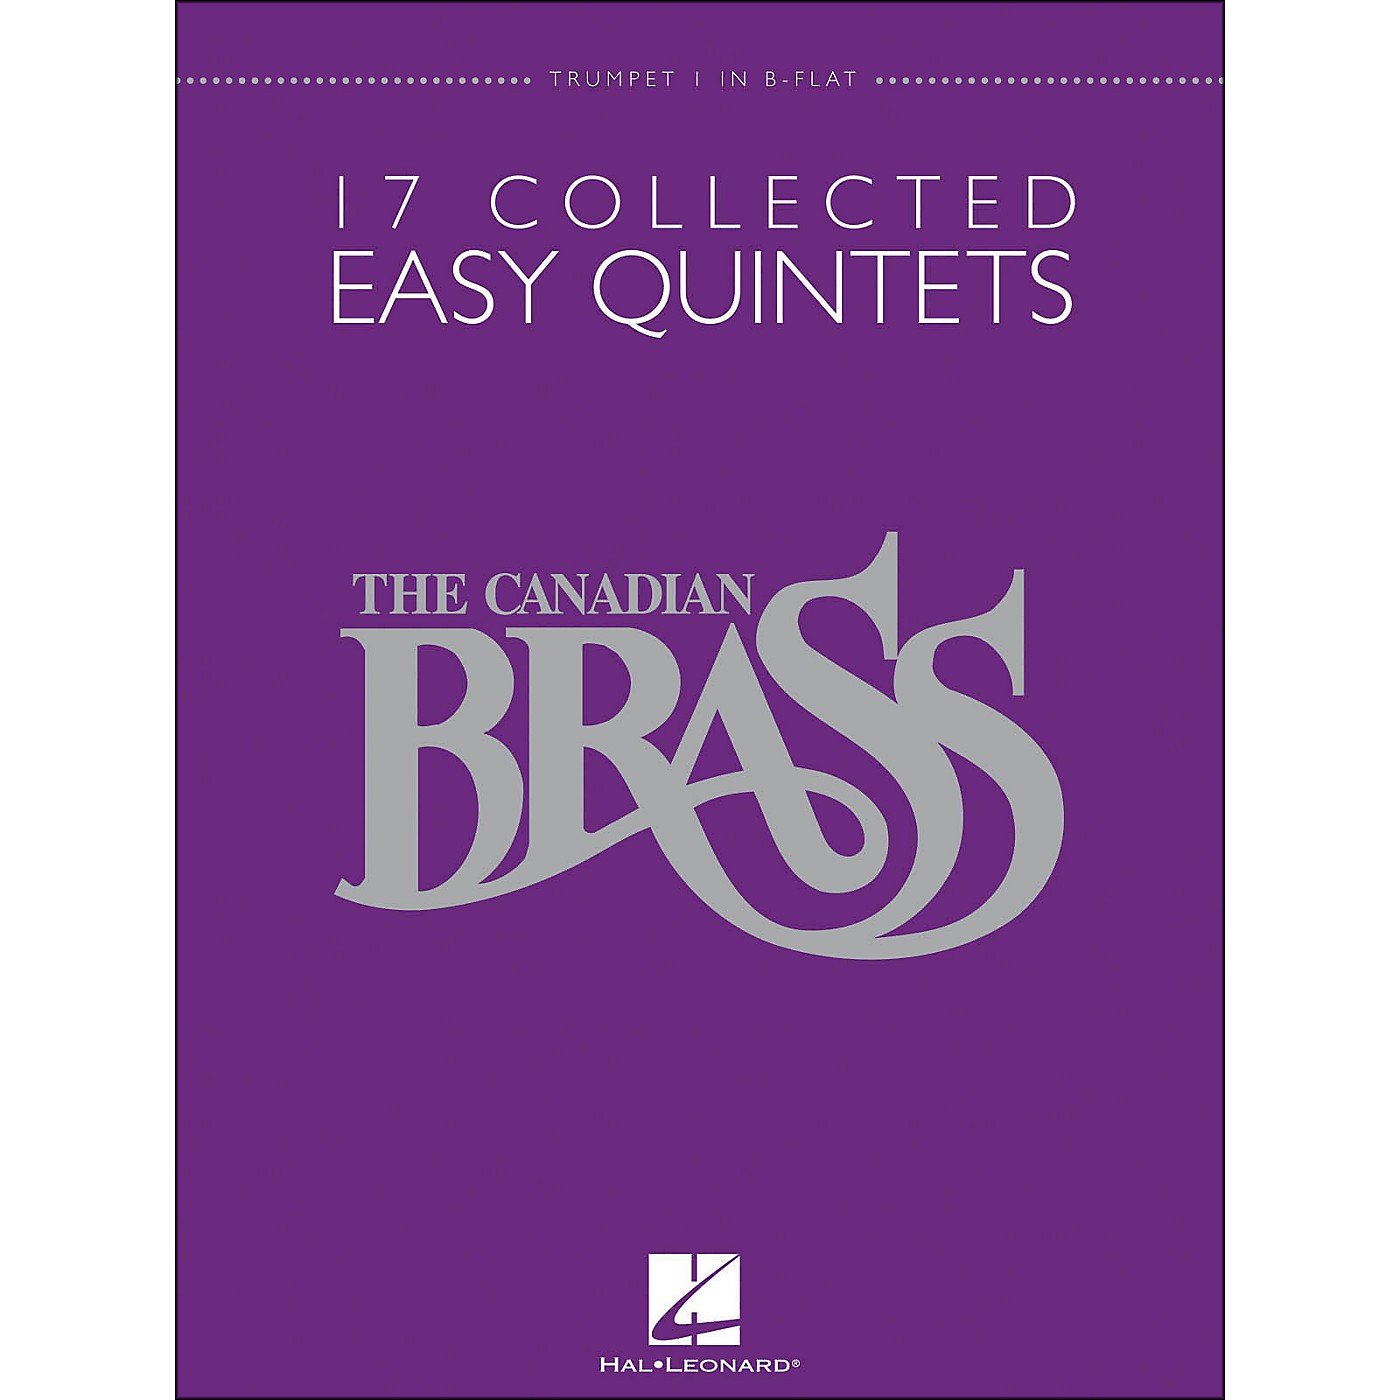 Hal Leonard The Canadian Brass: 17 Collected Easy Quintets Trumpet 1 - Brass Quintet thumbnail